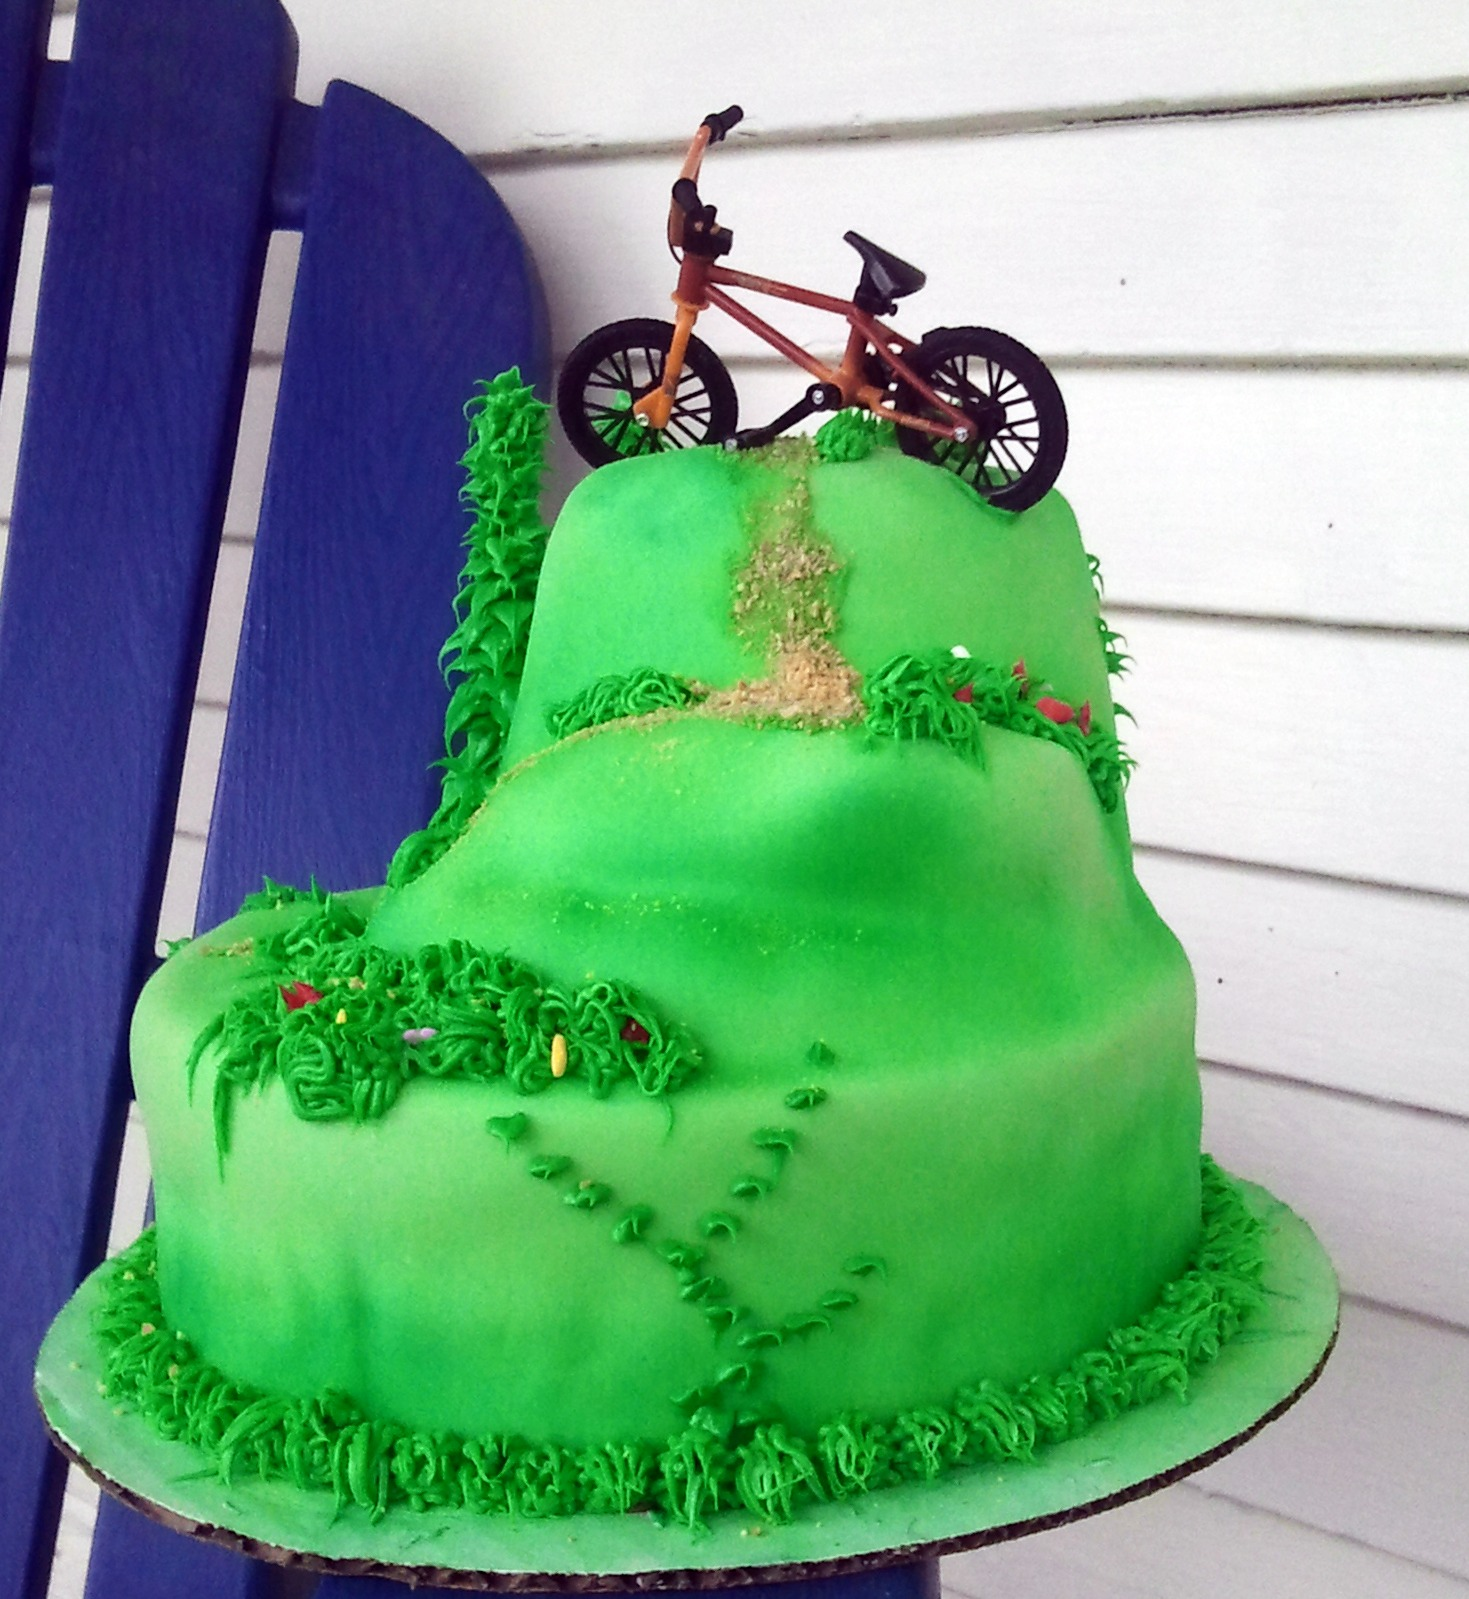 The Cake Villain: Mountain Bike Birthday Cake